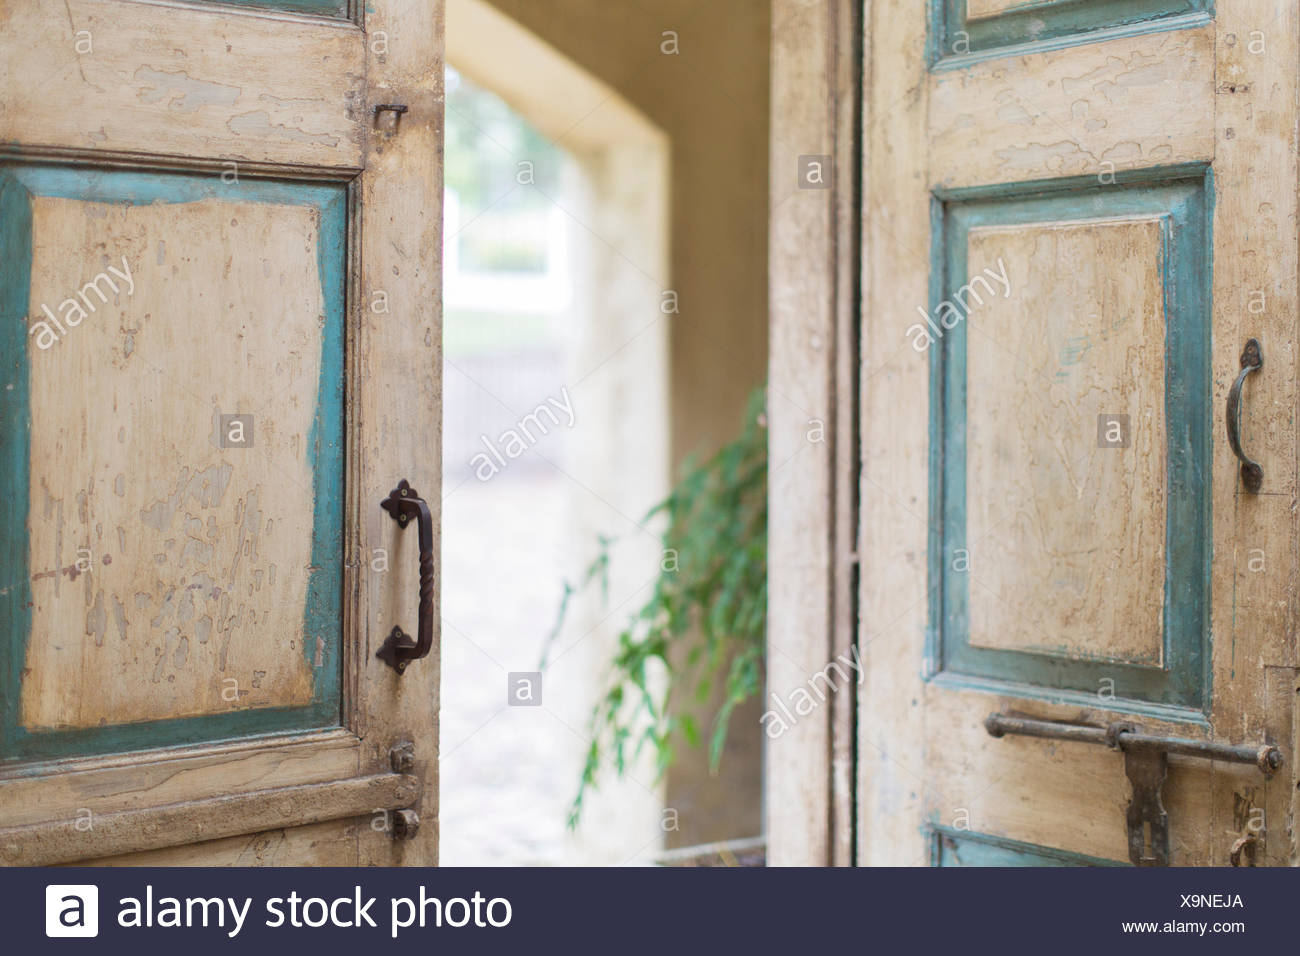 Close up of door and handles of rustic house - Stock Image